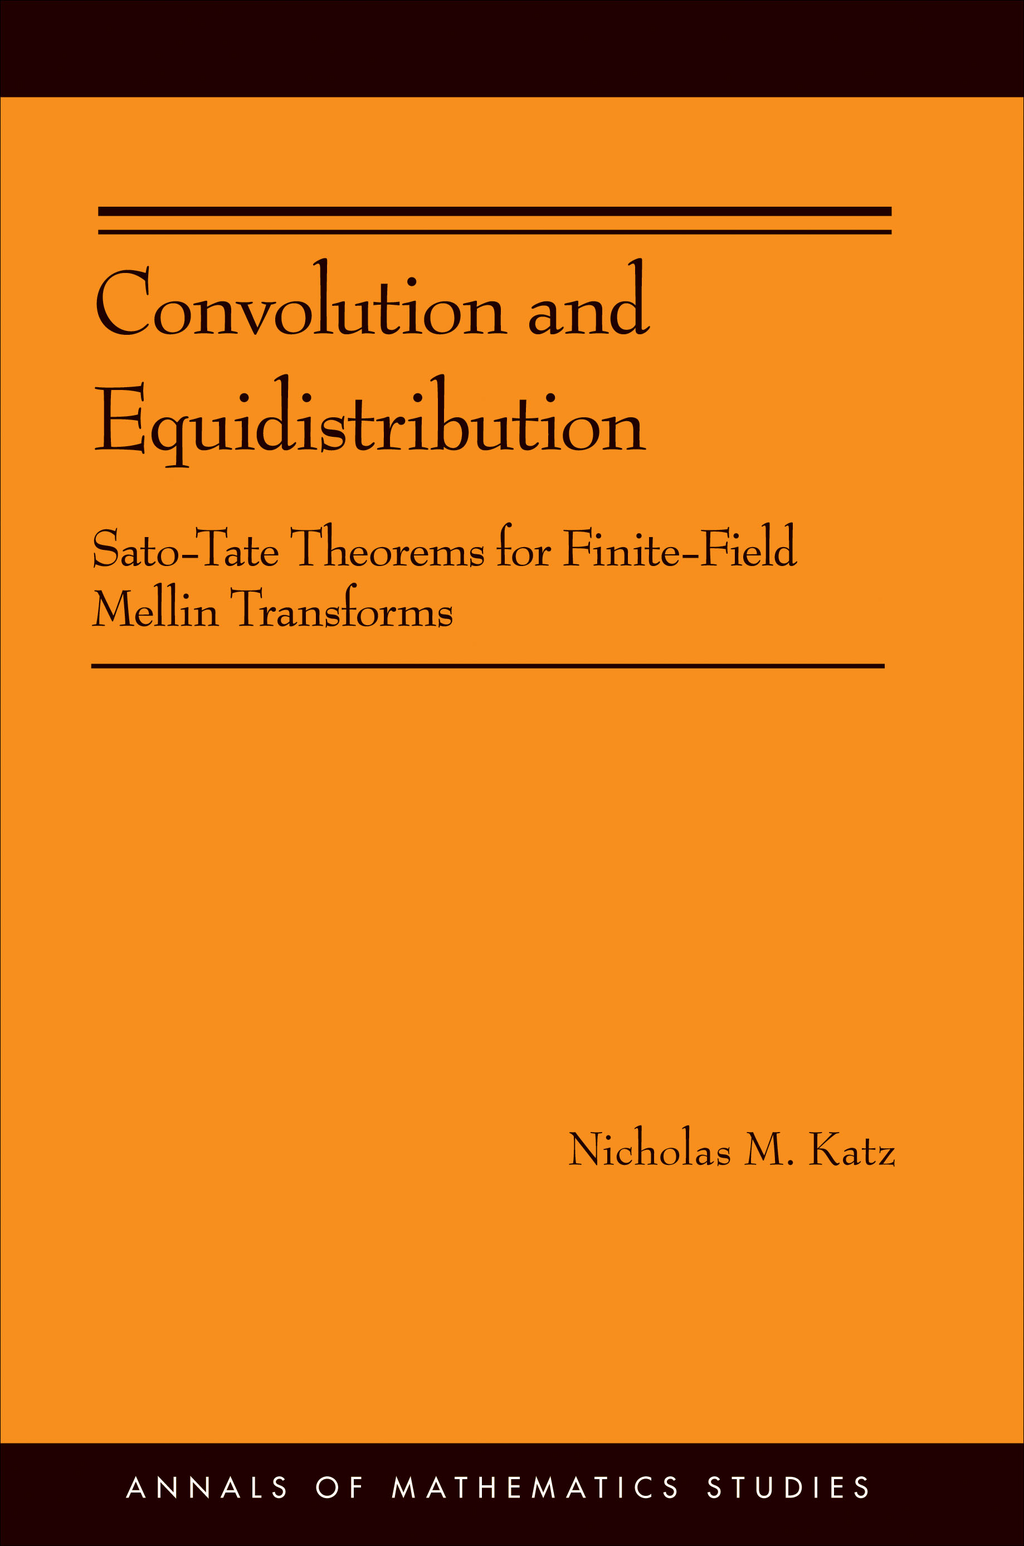 Convolution and Equidistribution Sato-Tate Theorems for Finite-Field Mellin Transforms (AM-180)